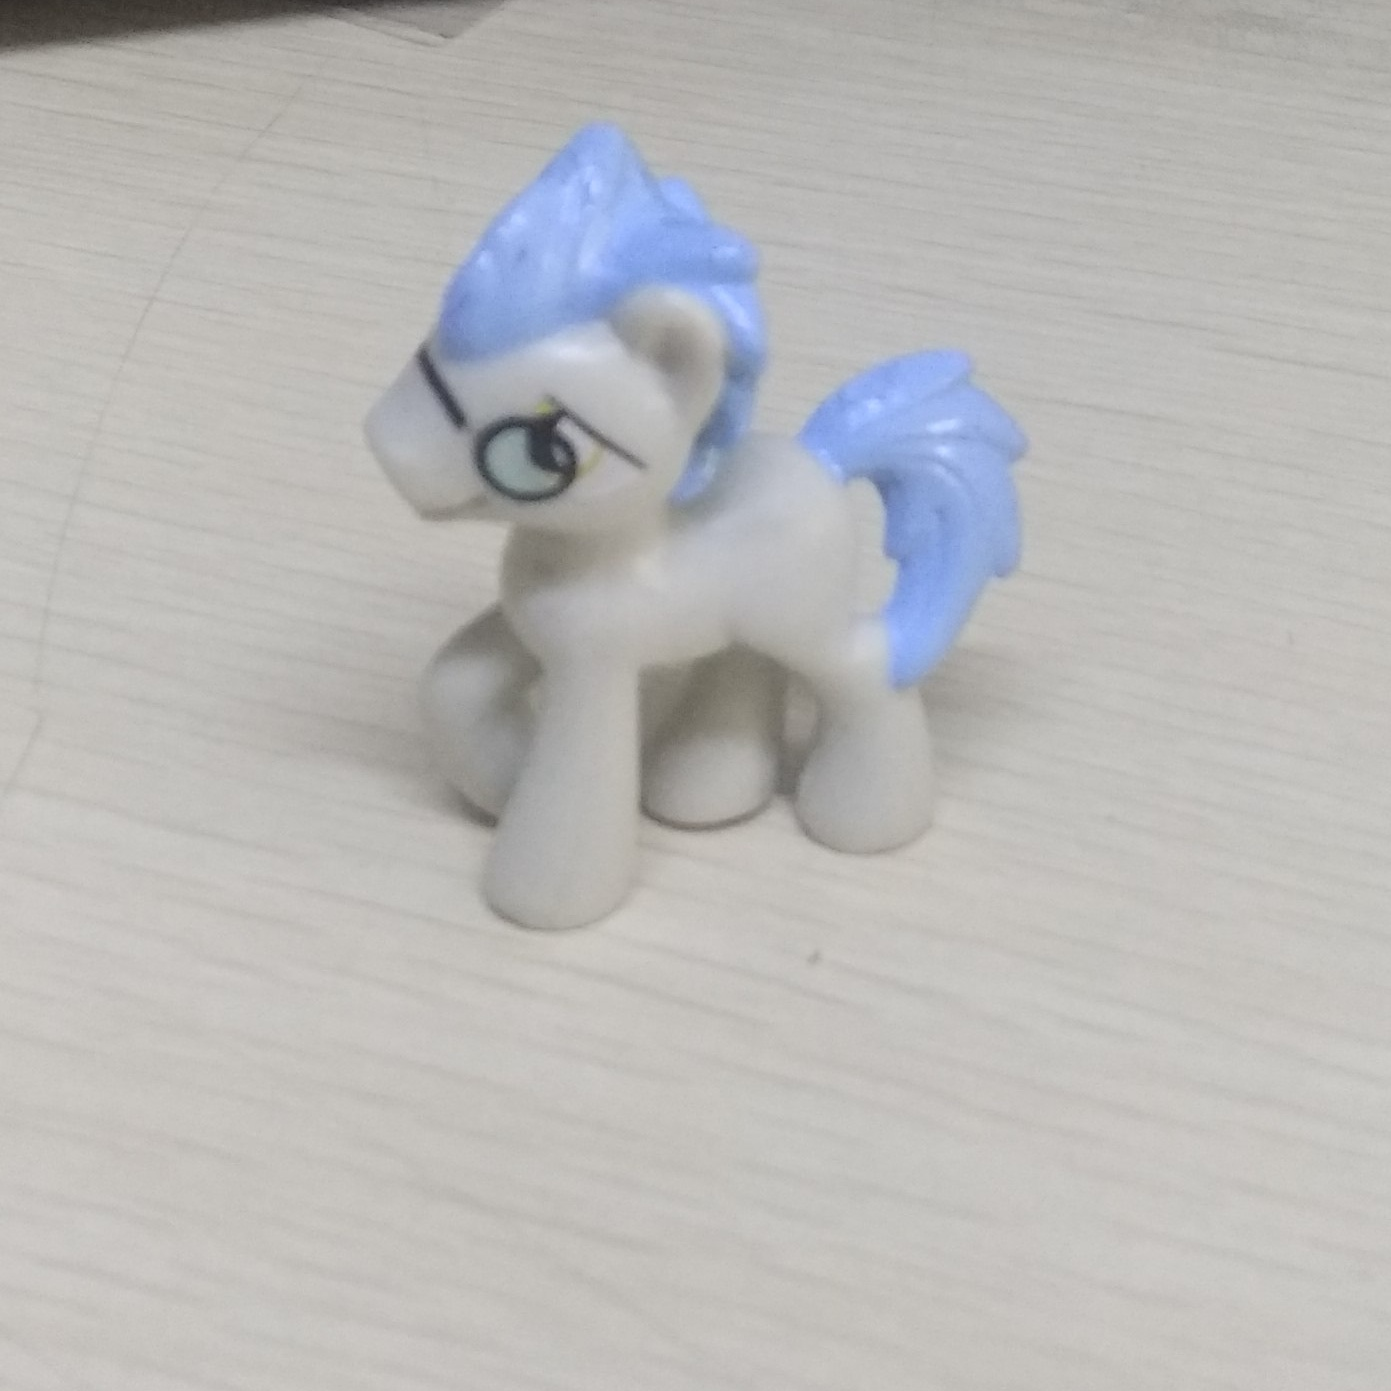 Details about My Little Pony Movie Tall Order (Wave 22) Blind Bag  Mini-Figure Girls Toy